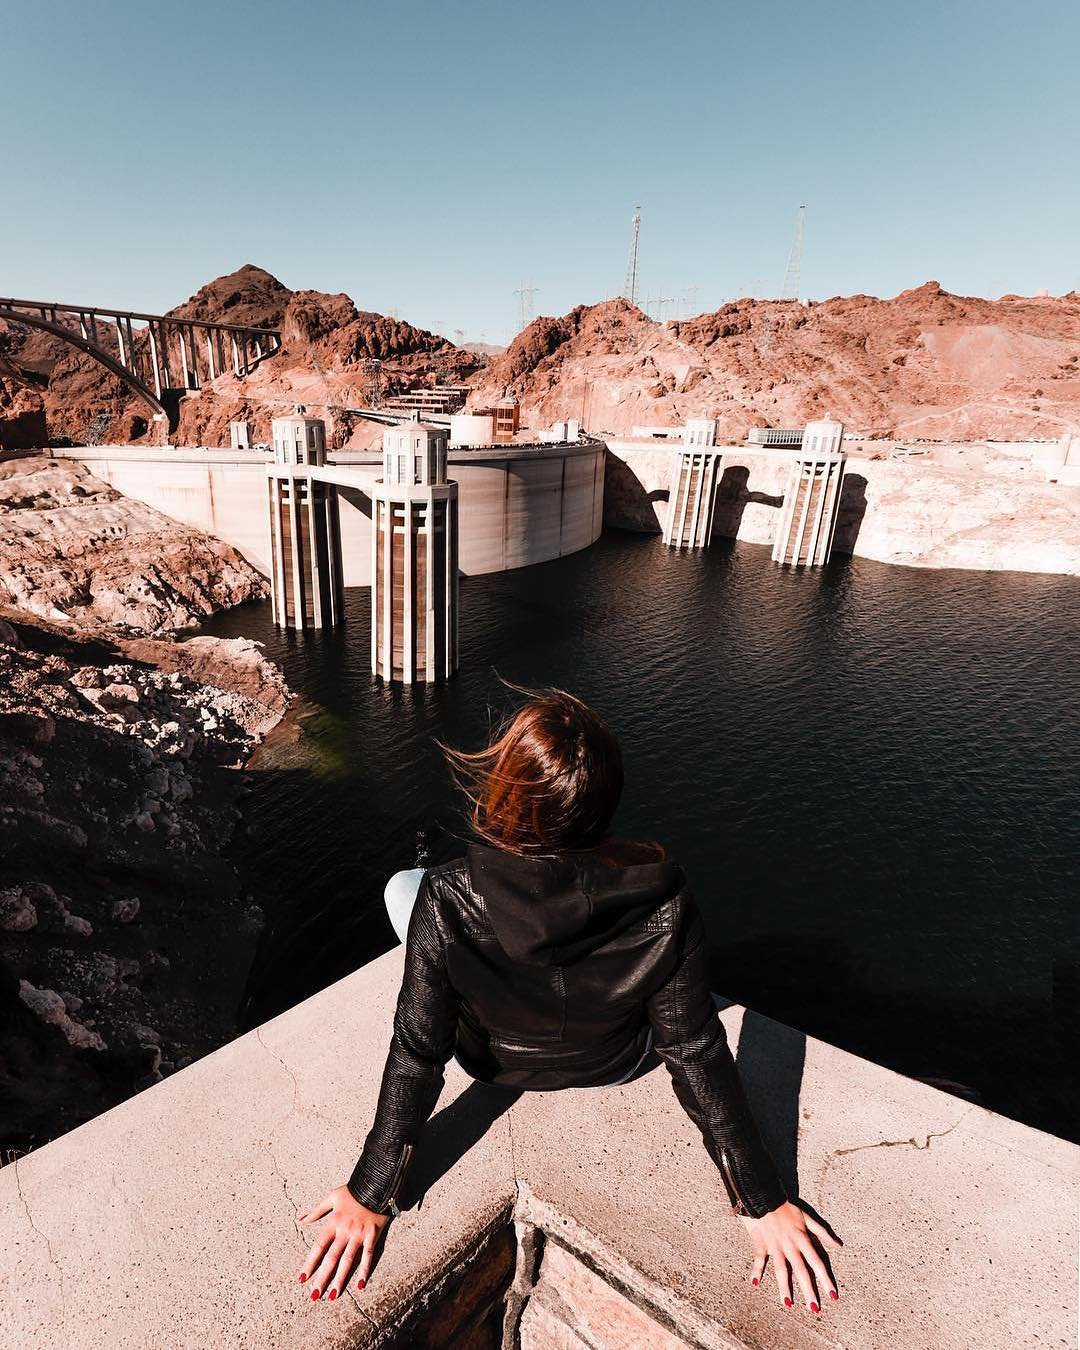 Dam, this is high up! andreazando lives life on the edge of Nevada's #HooverDam — one of the greatest engineering achievements in human history. #VisitTheUSA